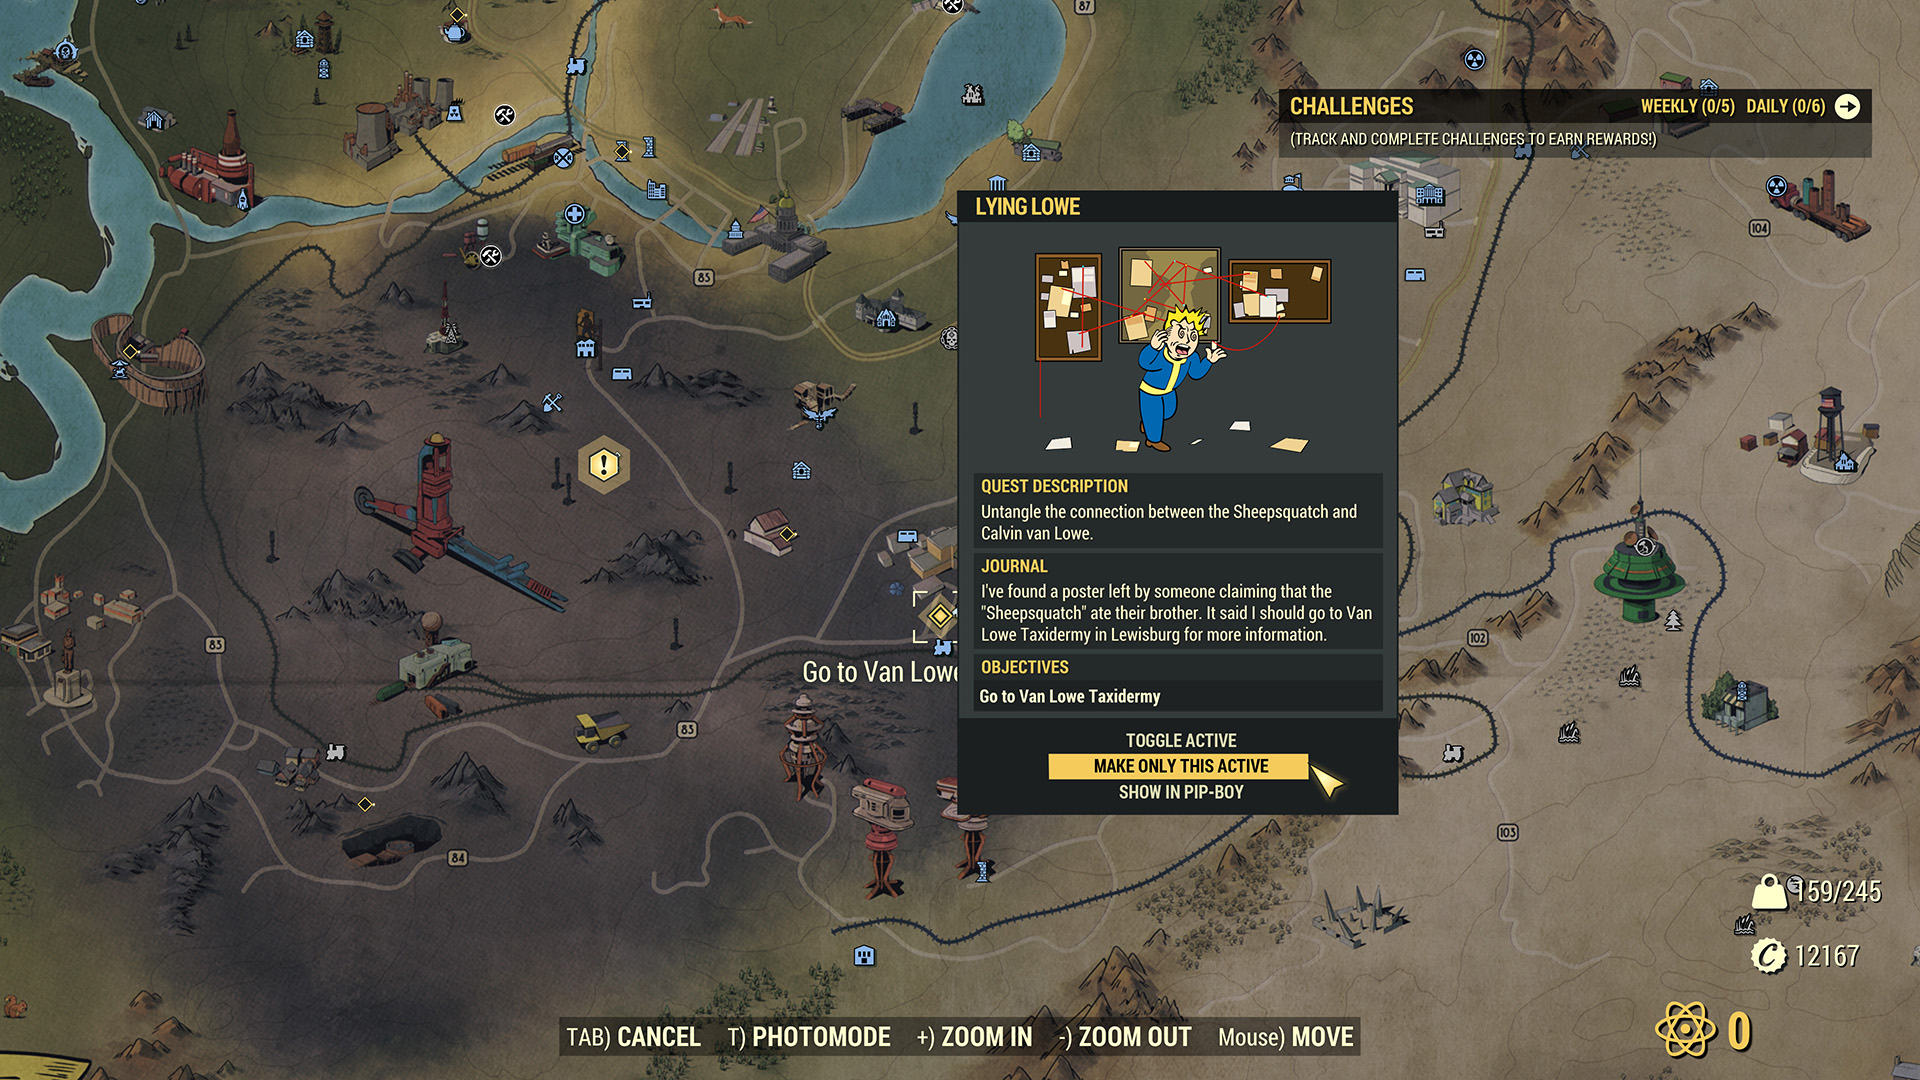 Fallout 76 Inside The Vault Wastelanders Quest Ui Improvements Vault 94 Updates And More